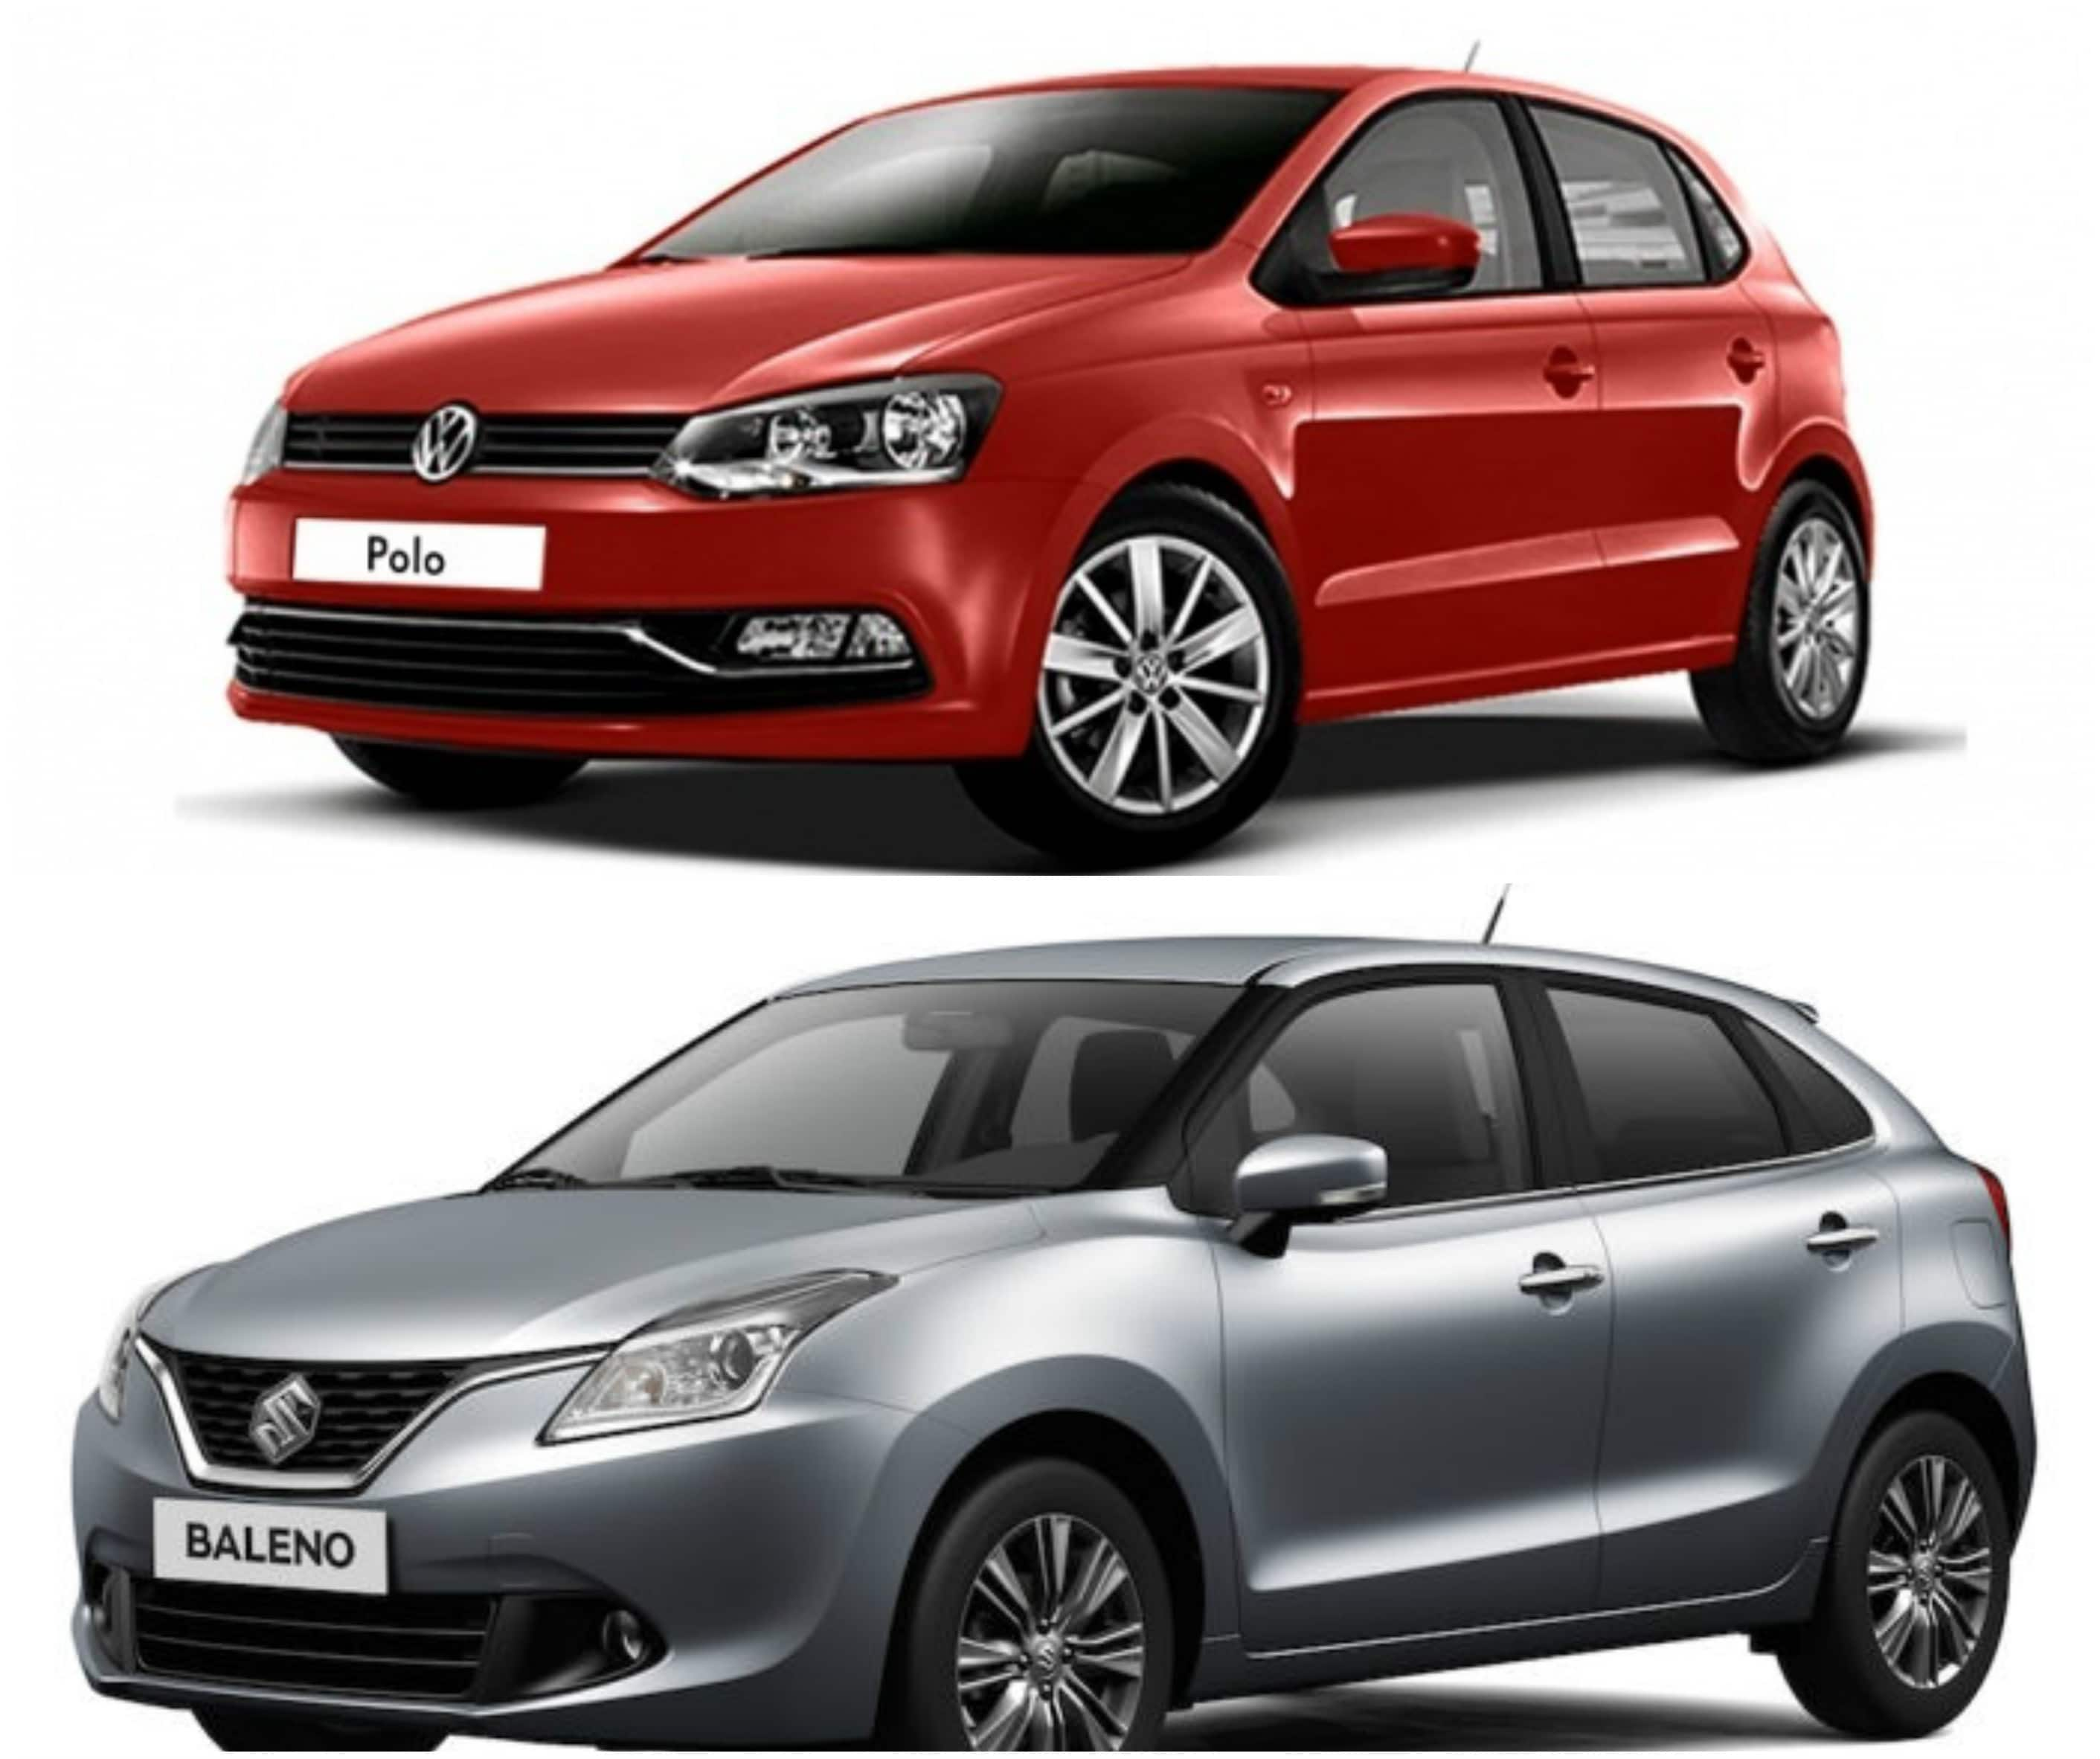 maruti suzuki baleno vs volkswagen polo price specification and features find new upcoming. Black Bedroom Furniture Sets. Home Design Ideas